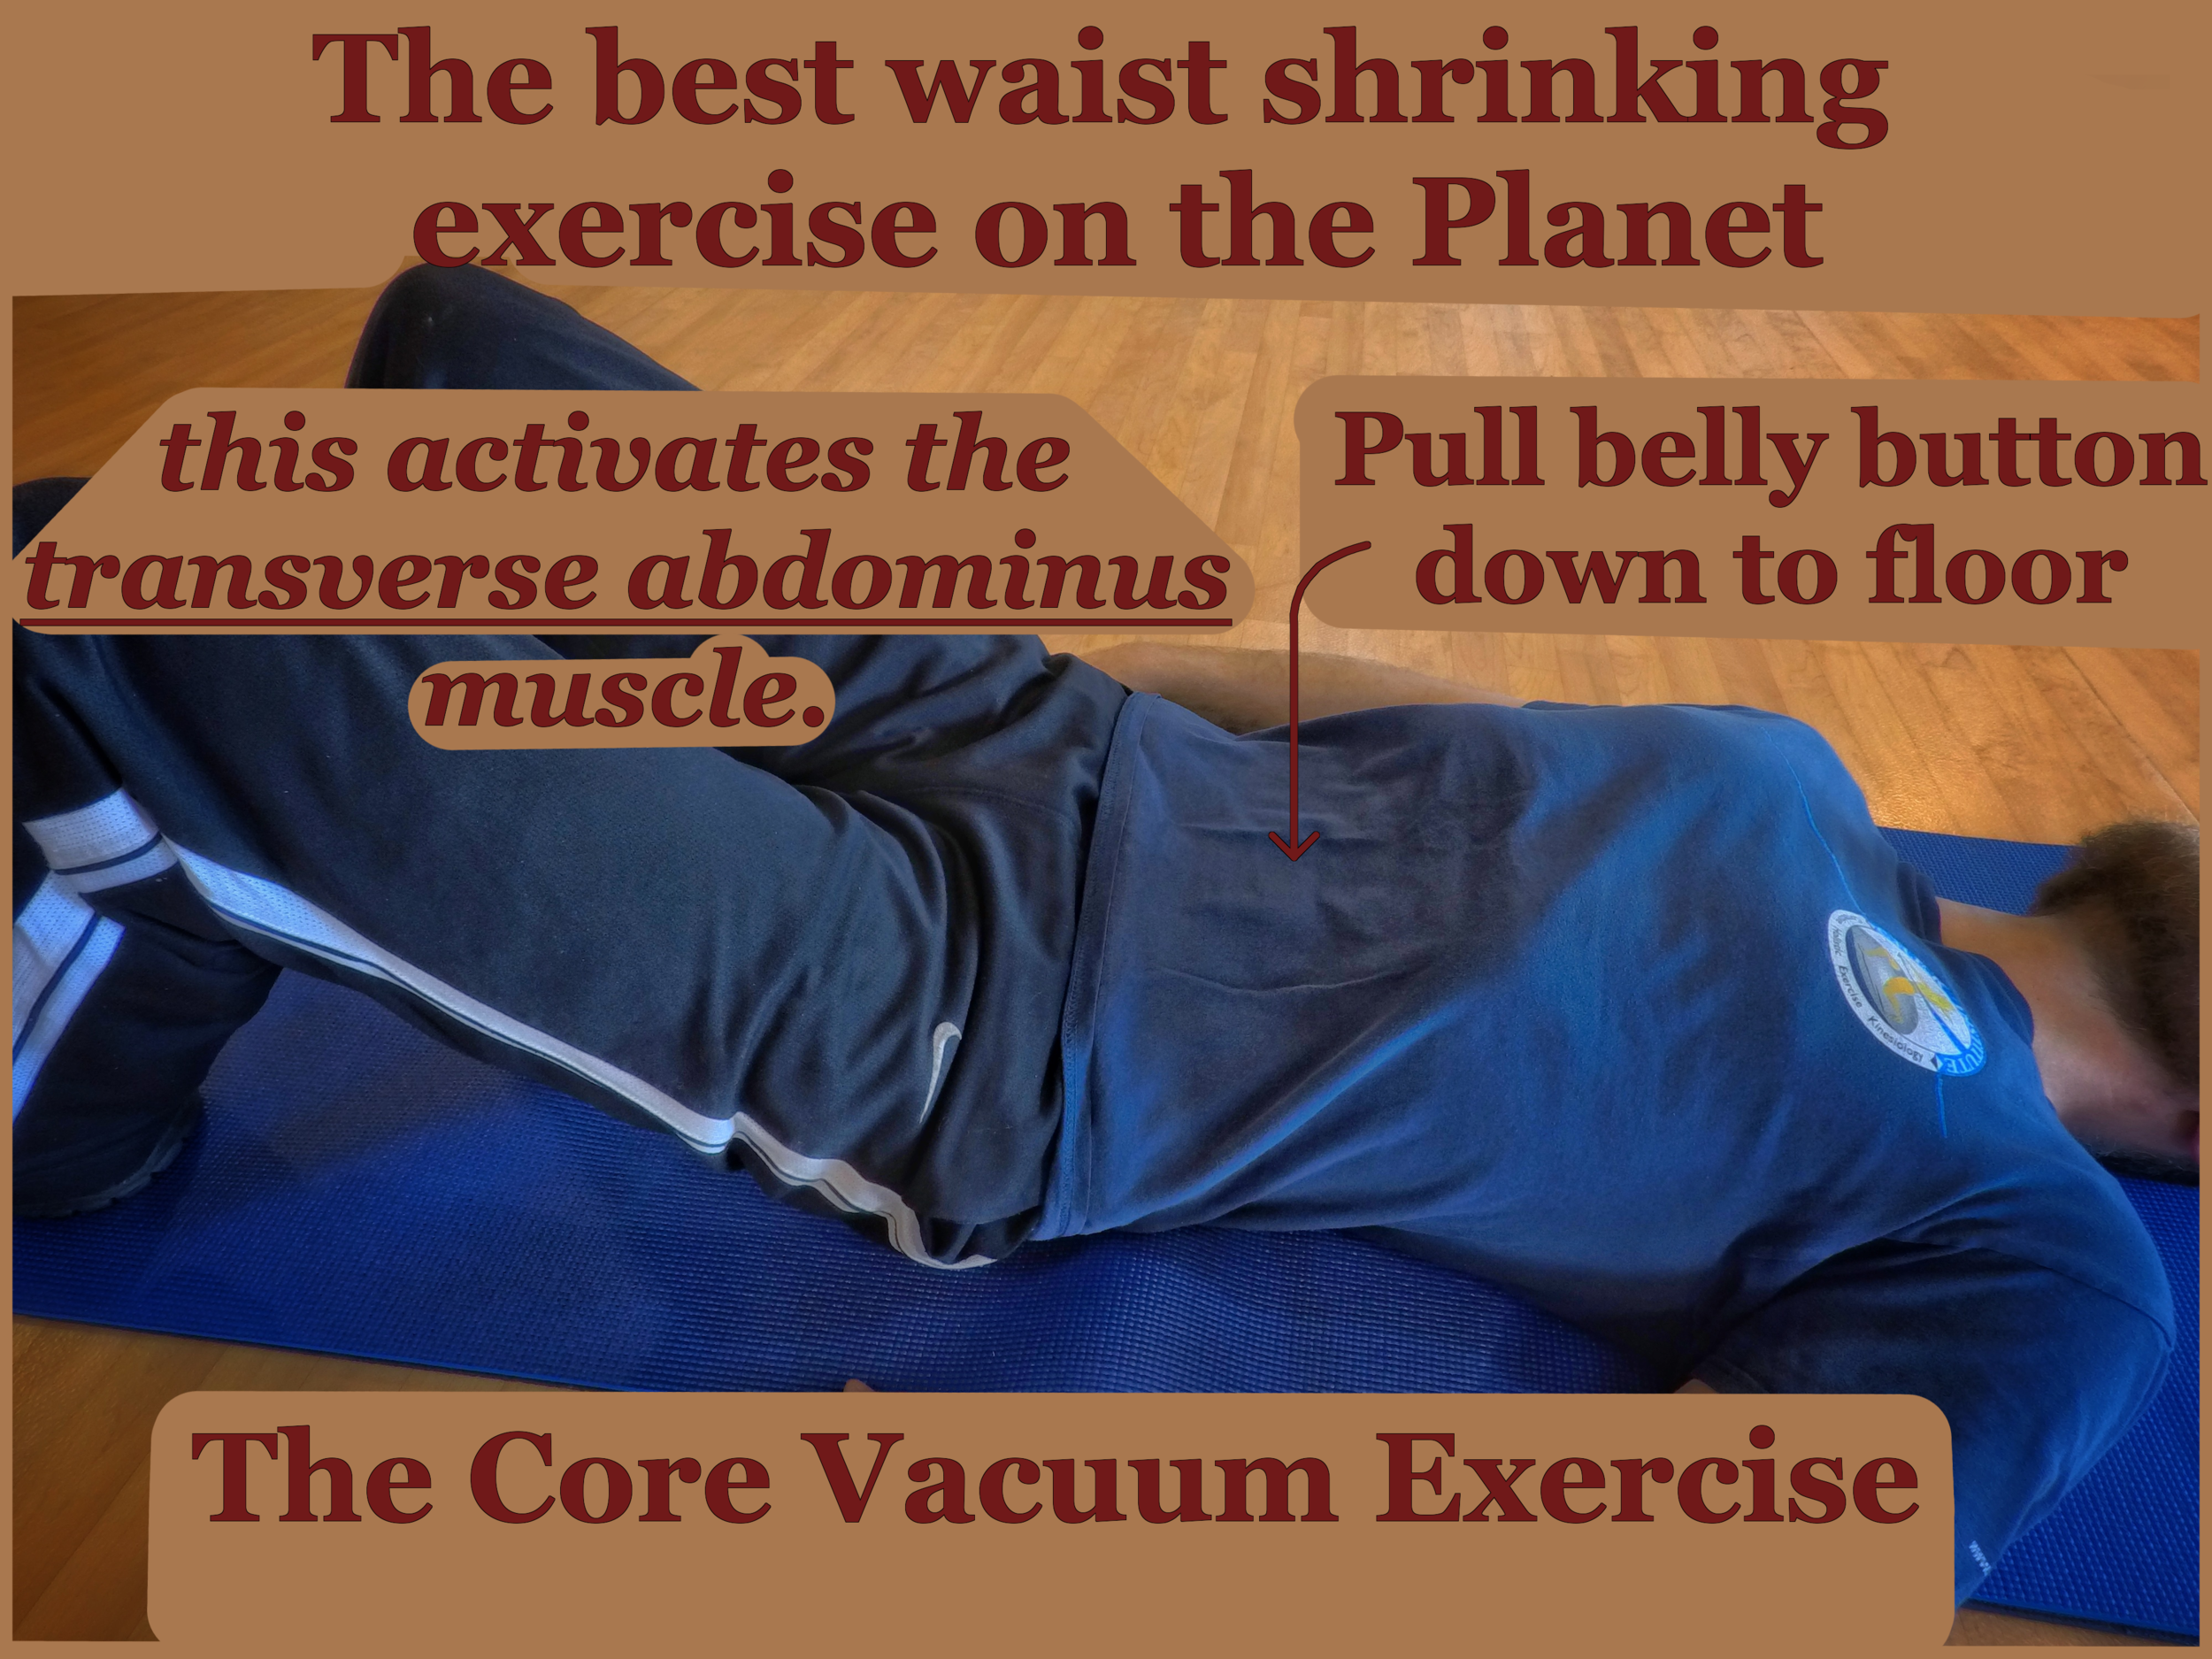 Best waist shrinking exercise on the planet - The Stomach Vacuum Exercise